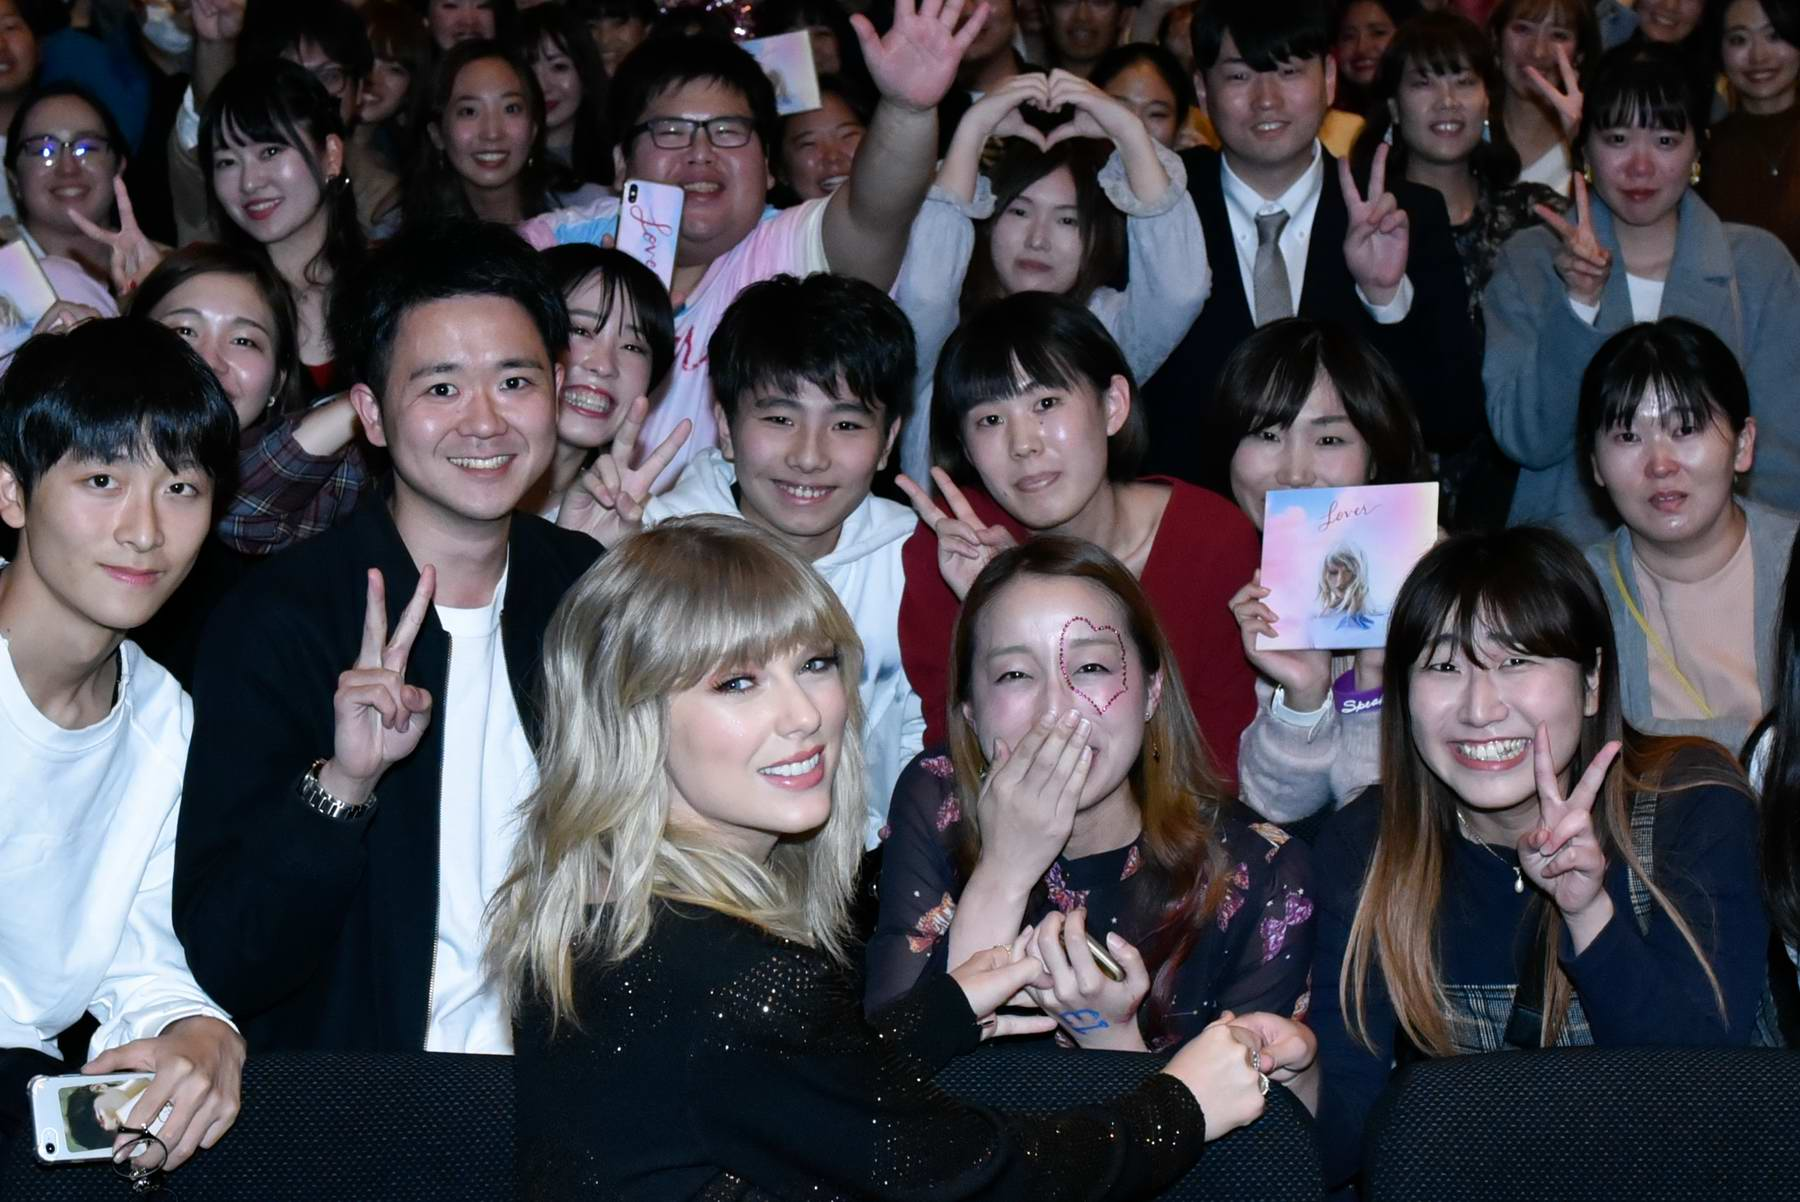 Taylor Swift Attends A Lover Meet And Greet Event In Tokyo Japan 061119 7